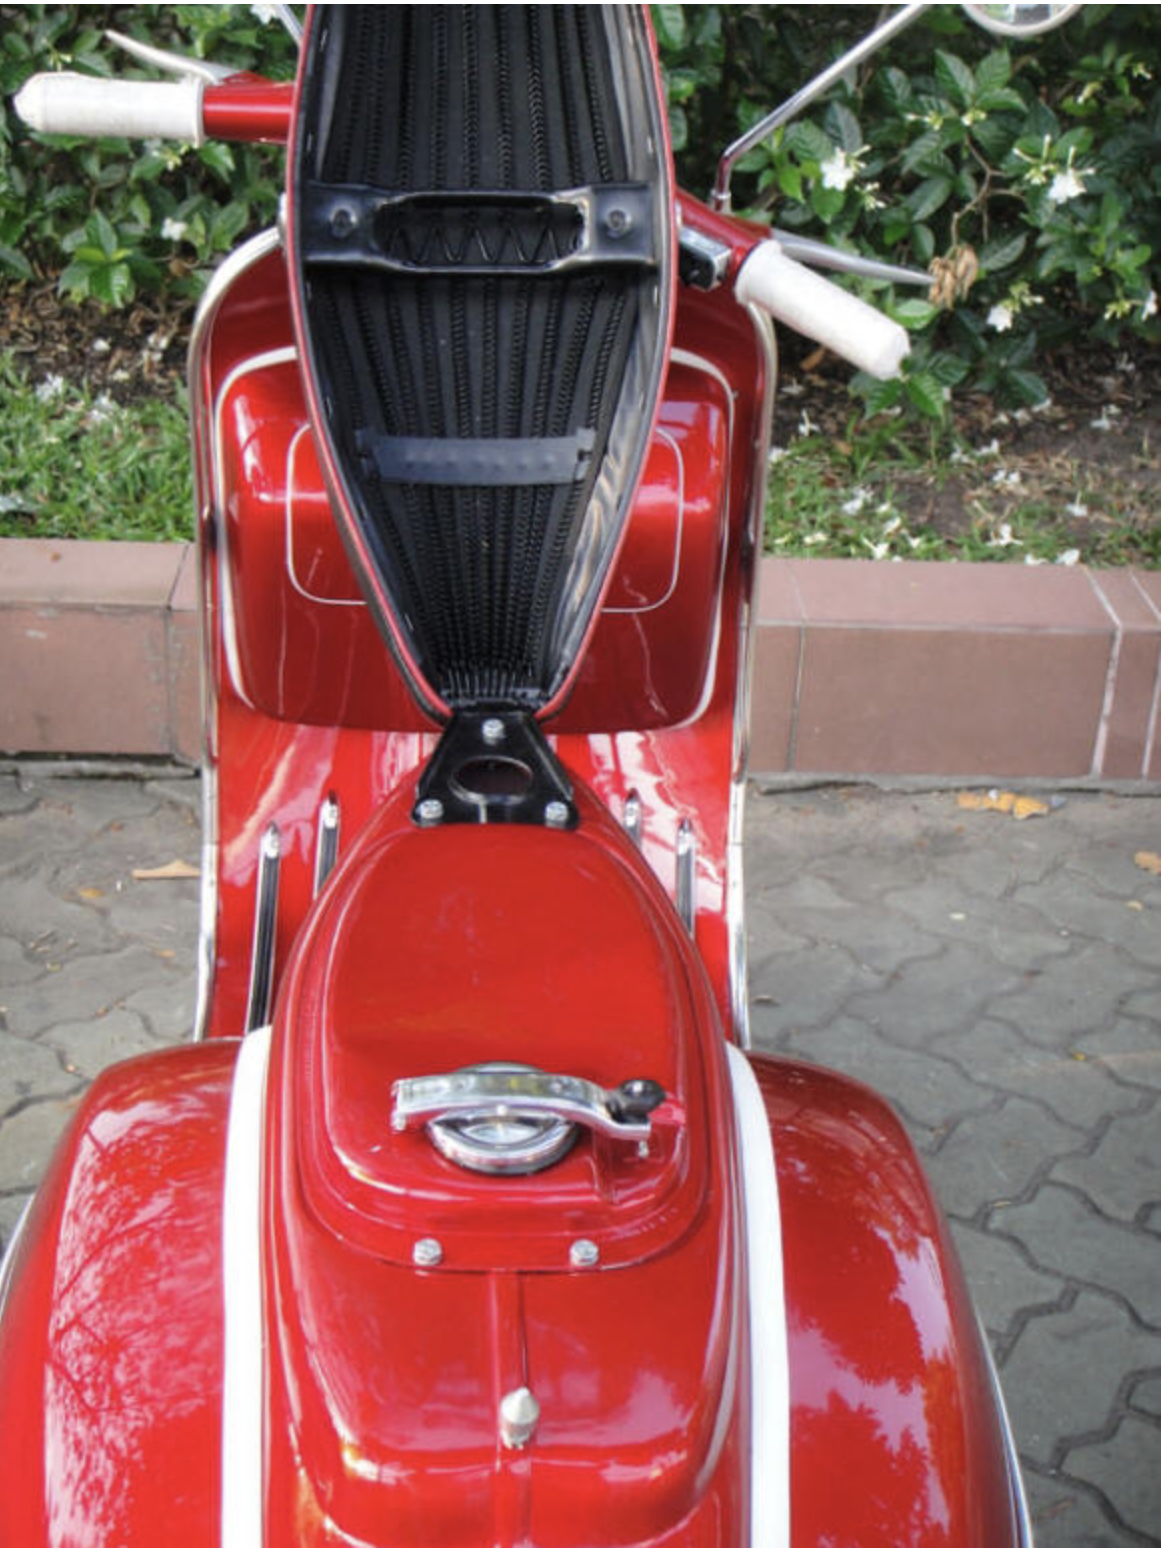 1967 Vespa SS180 - Red - FULLY Restored For Sale (picture 4 of 6)